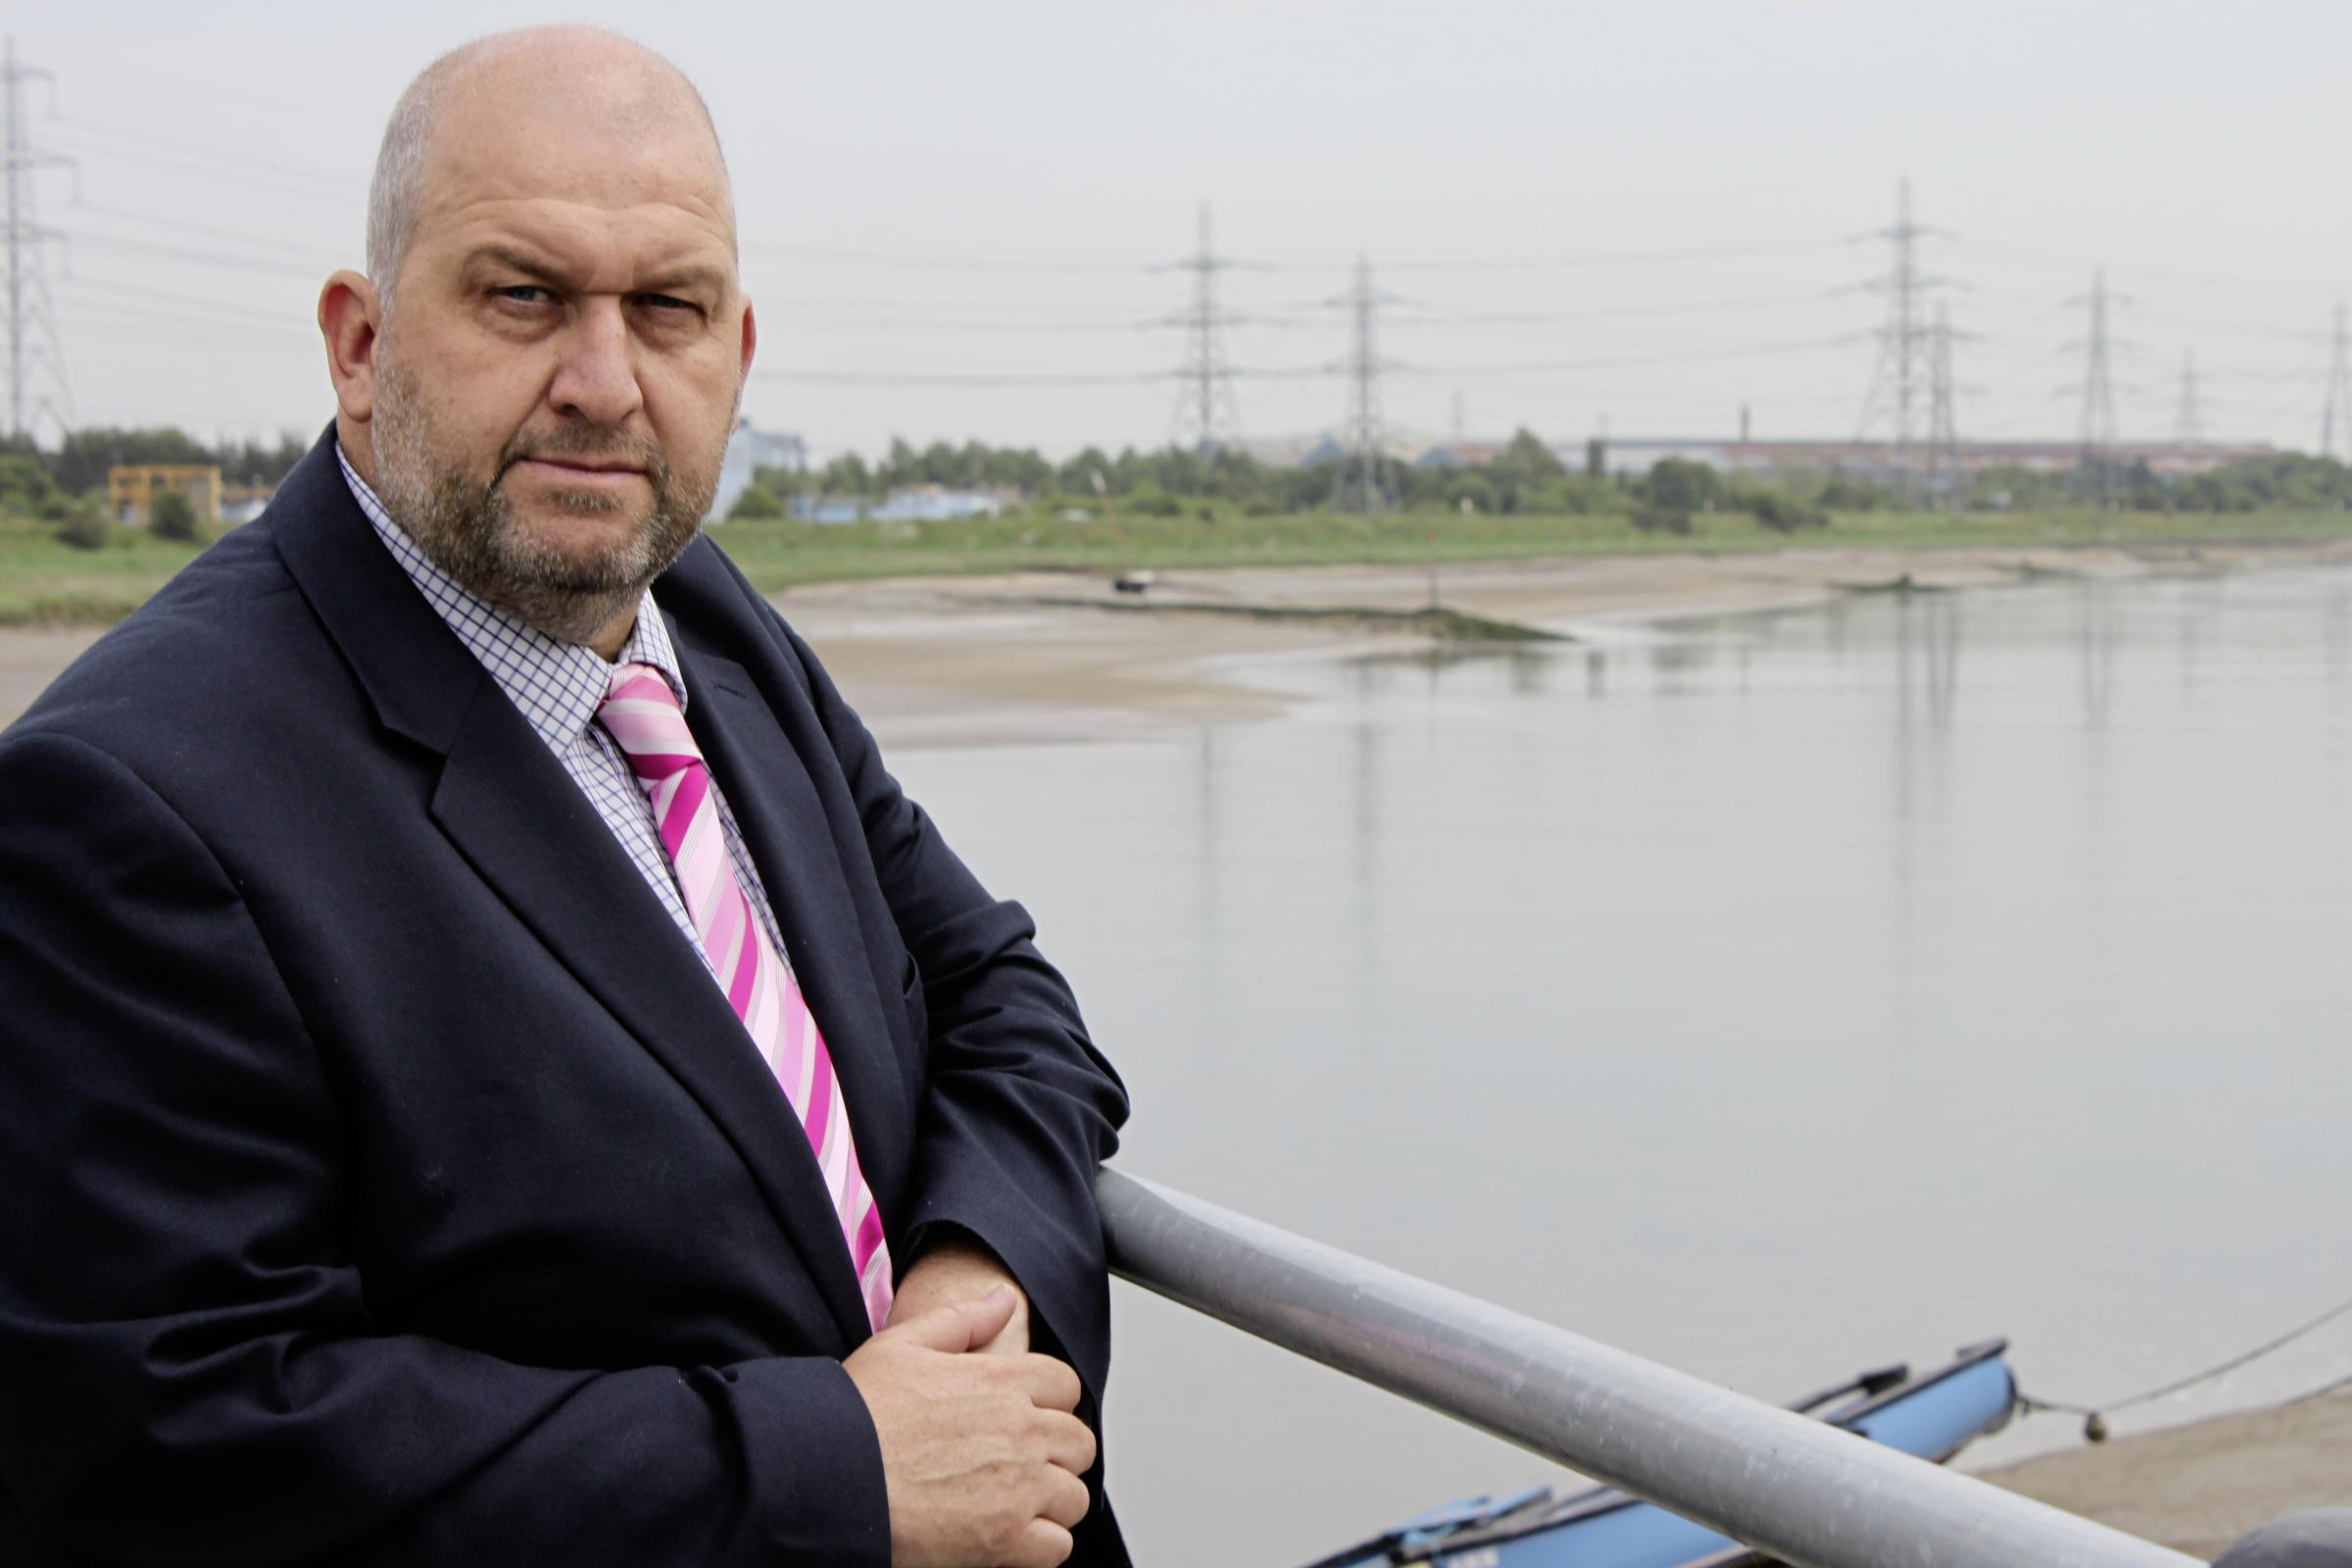 The late Carl Sargeant